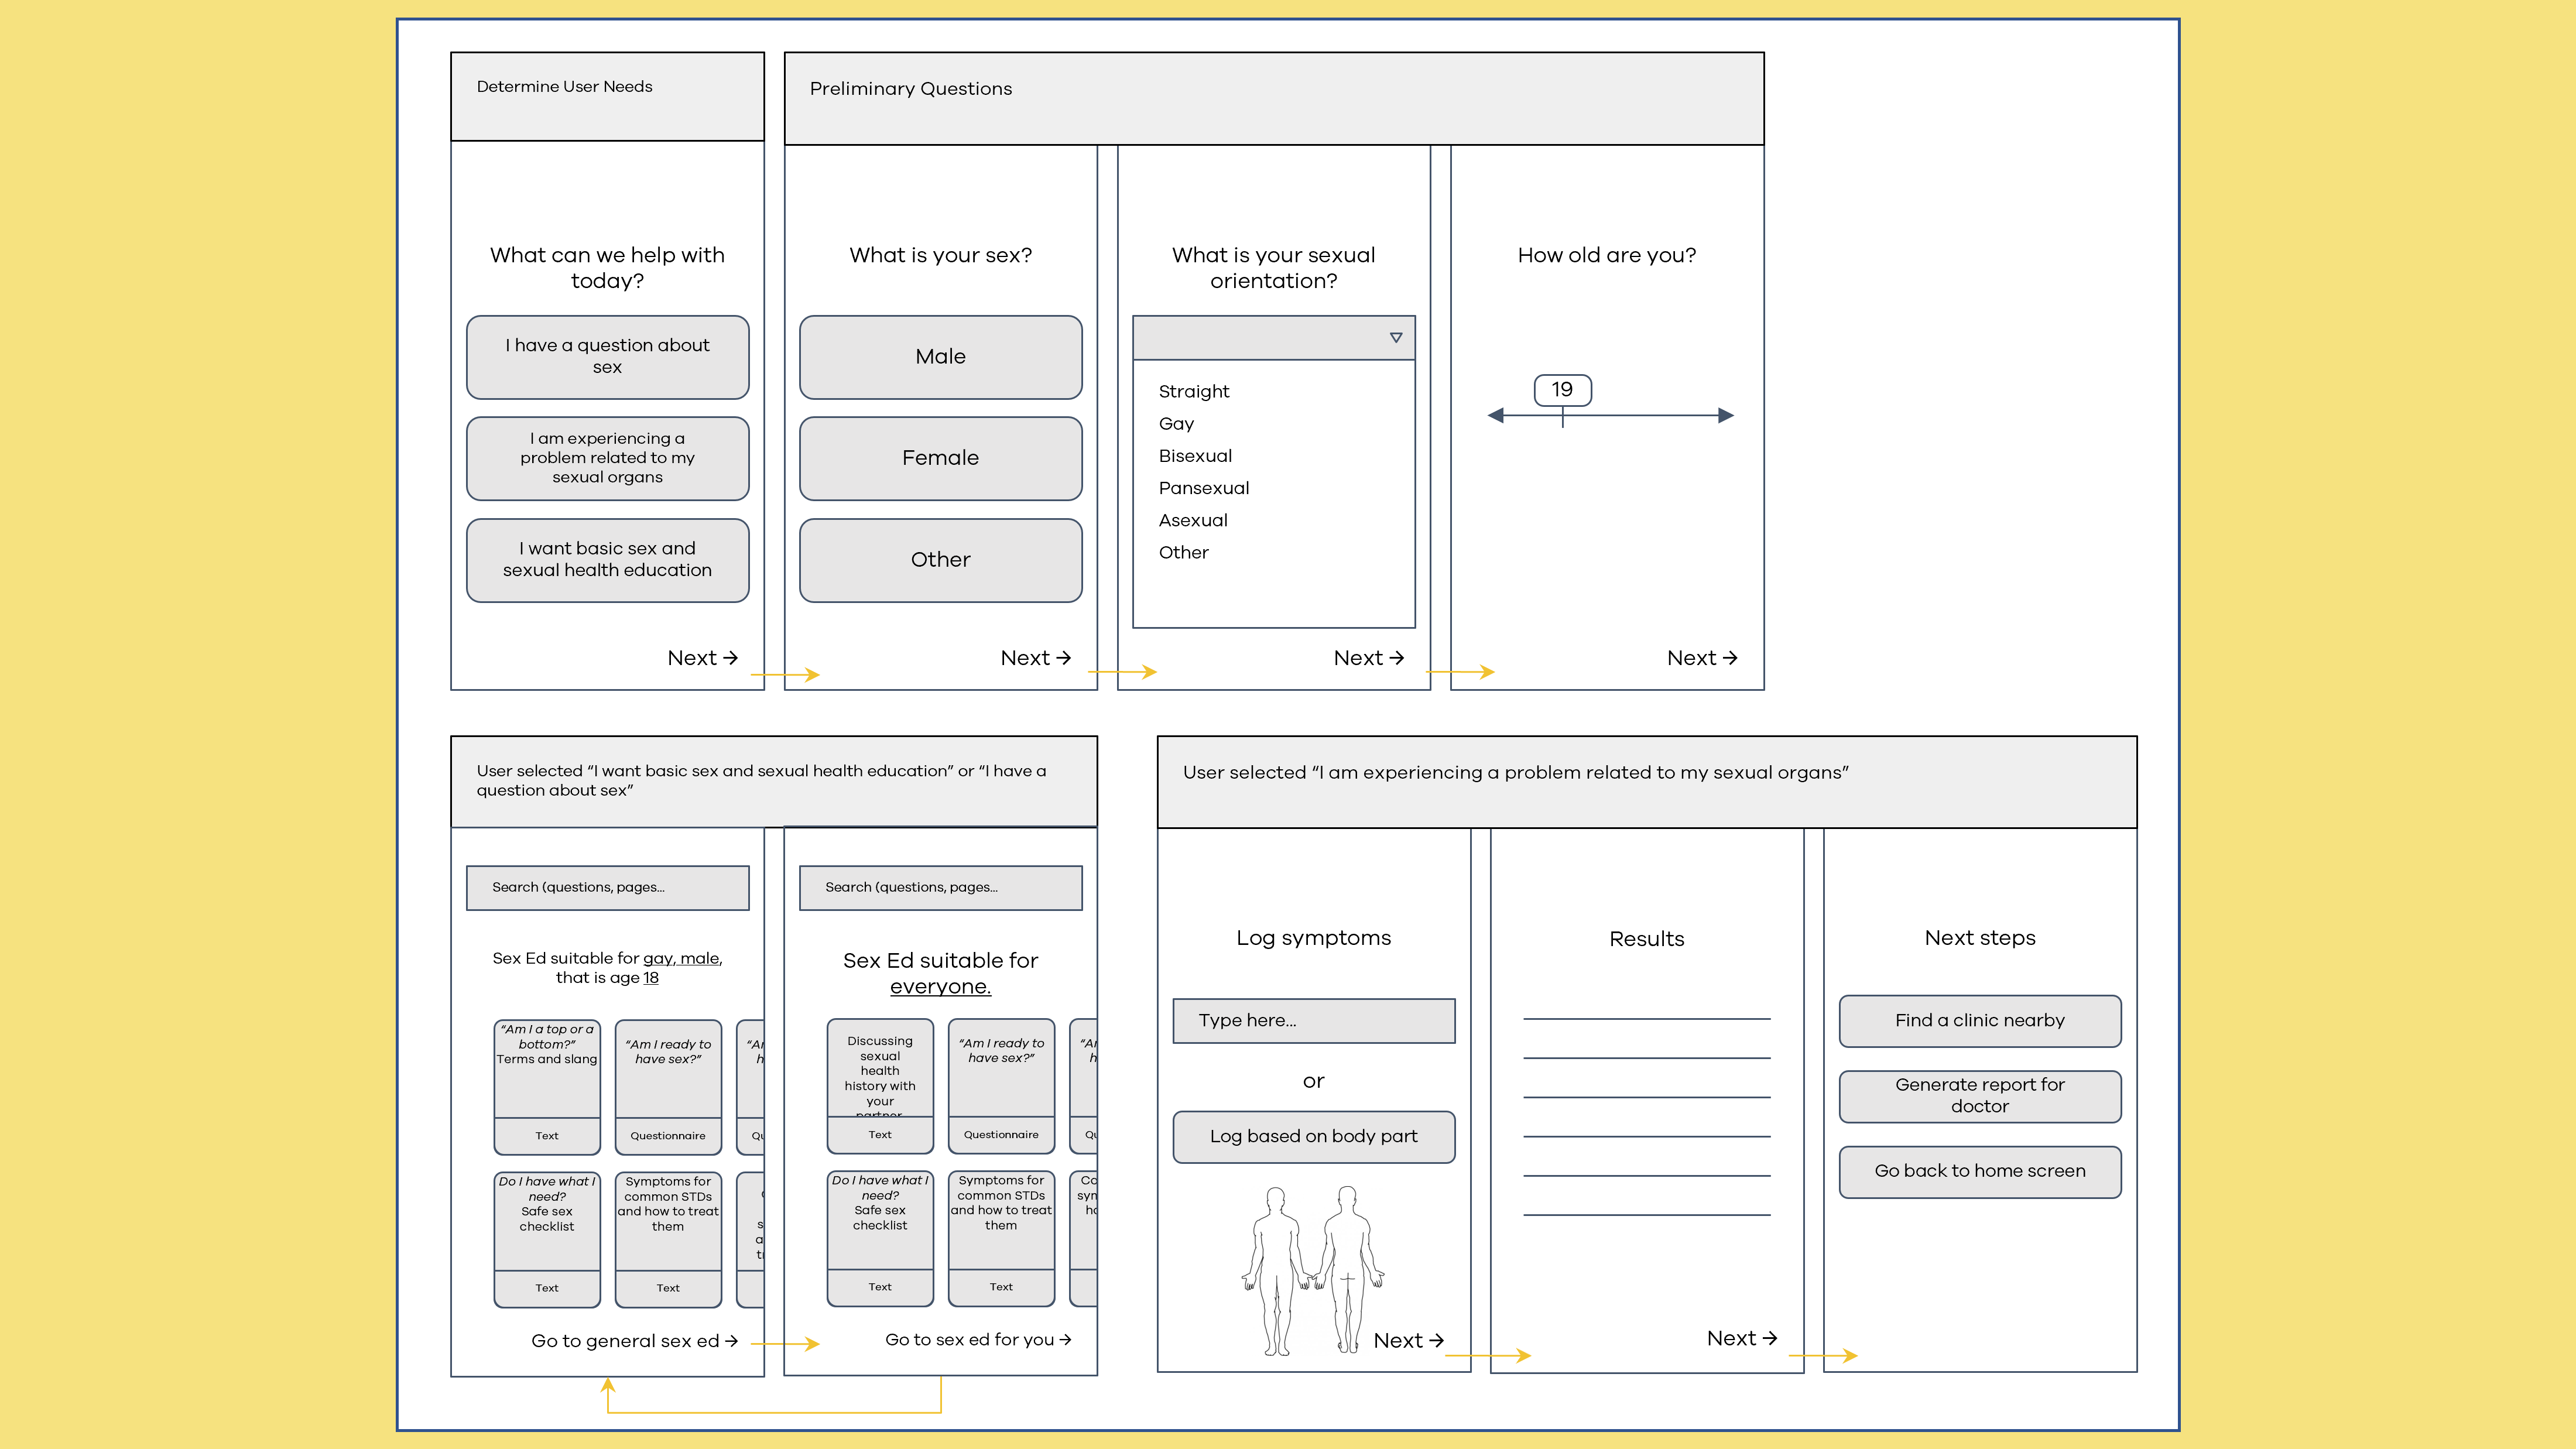 Low fidelity wireframes displaying various proposed screens such as determining user needs, preliminary questions, user goals, and functionality.